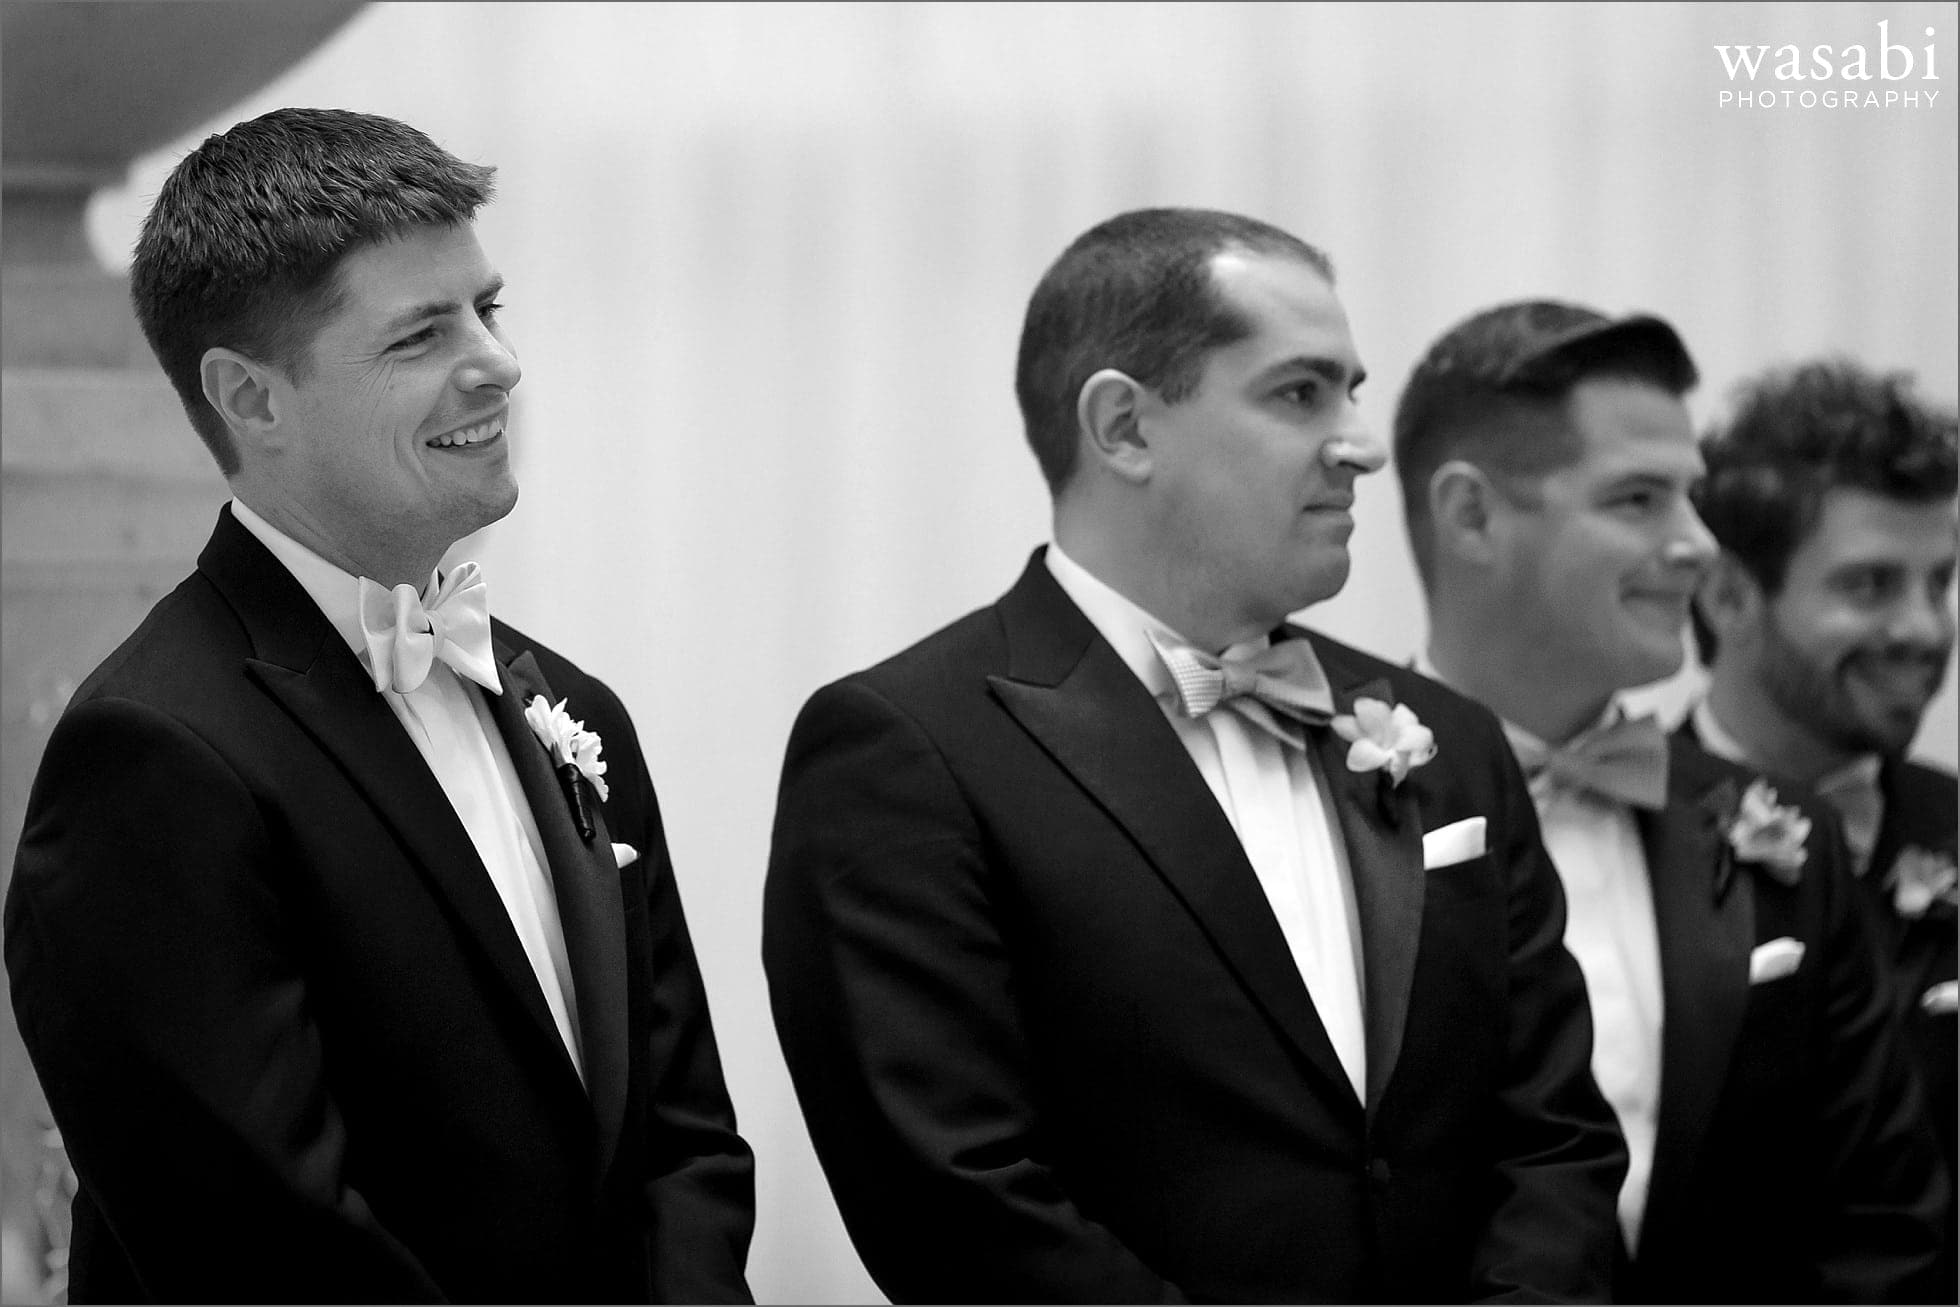 Groom reacts as bride walks down aisle during a wedding ceremony at The Rookery Building in Chicago